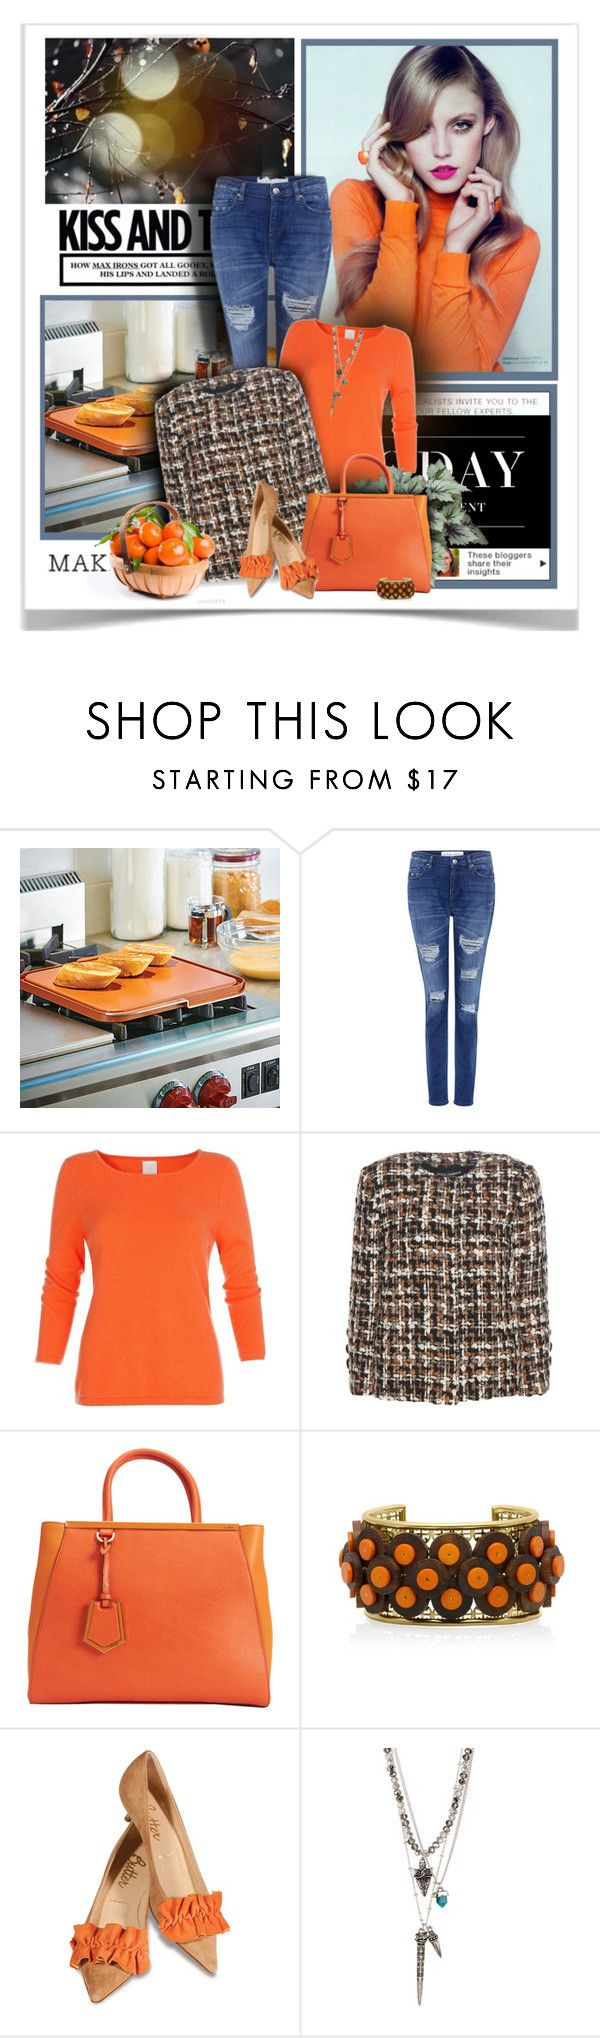 """""""Sunday OOTD"""" by sherry7411 ❤ liked on Polyvore featuring Improvements, Retrò, IRO, Levi's, Dolce&Gabbana, Fendi, Tory Burch, Butter Shoes and Jamierocks"""